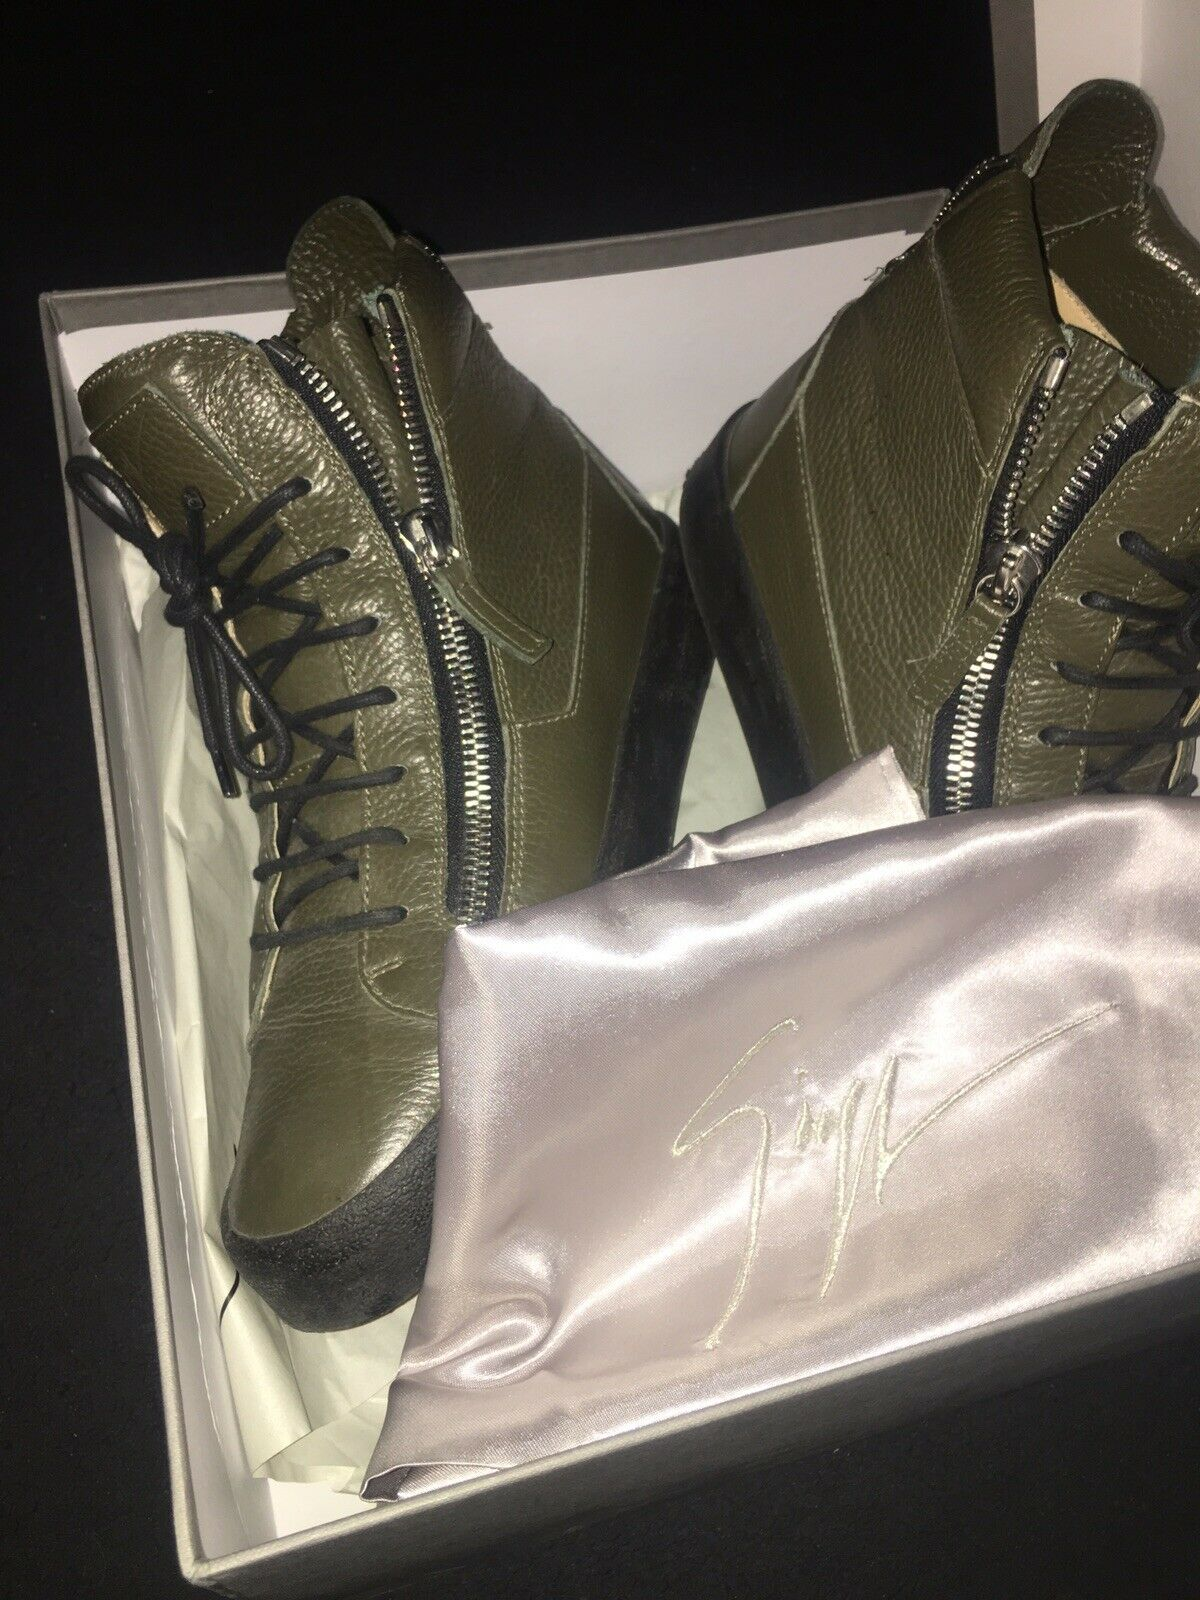 Guiseppe zanotti Kahki Green High Top Zip